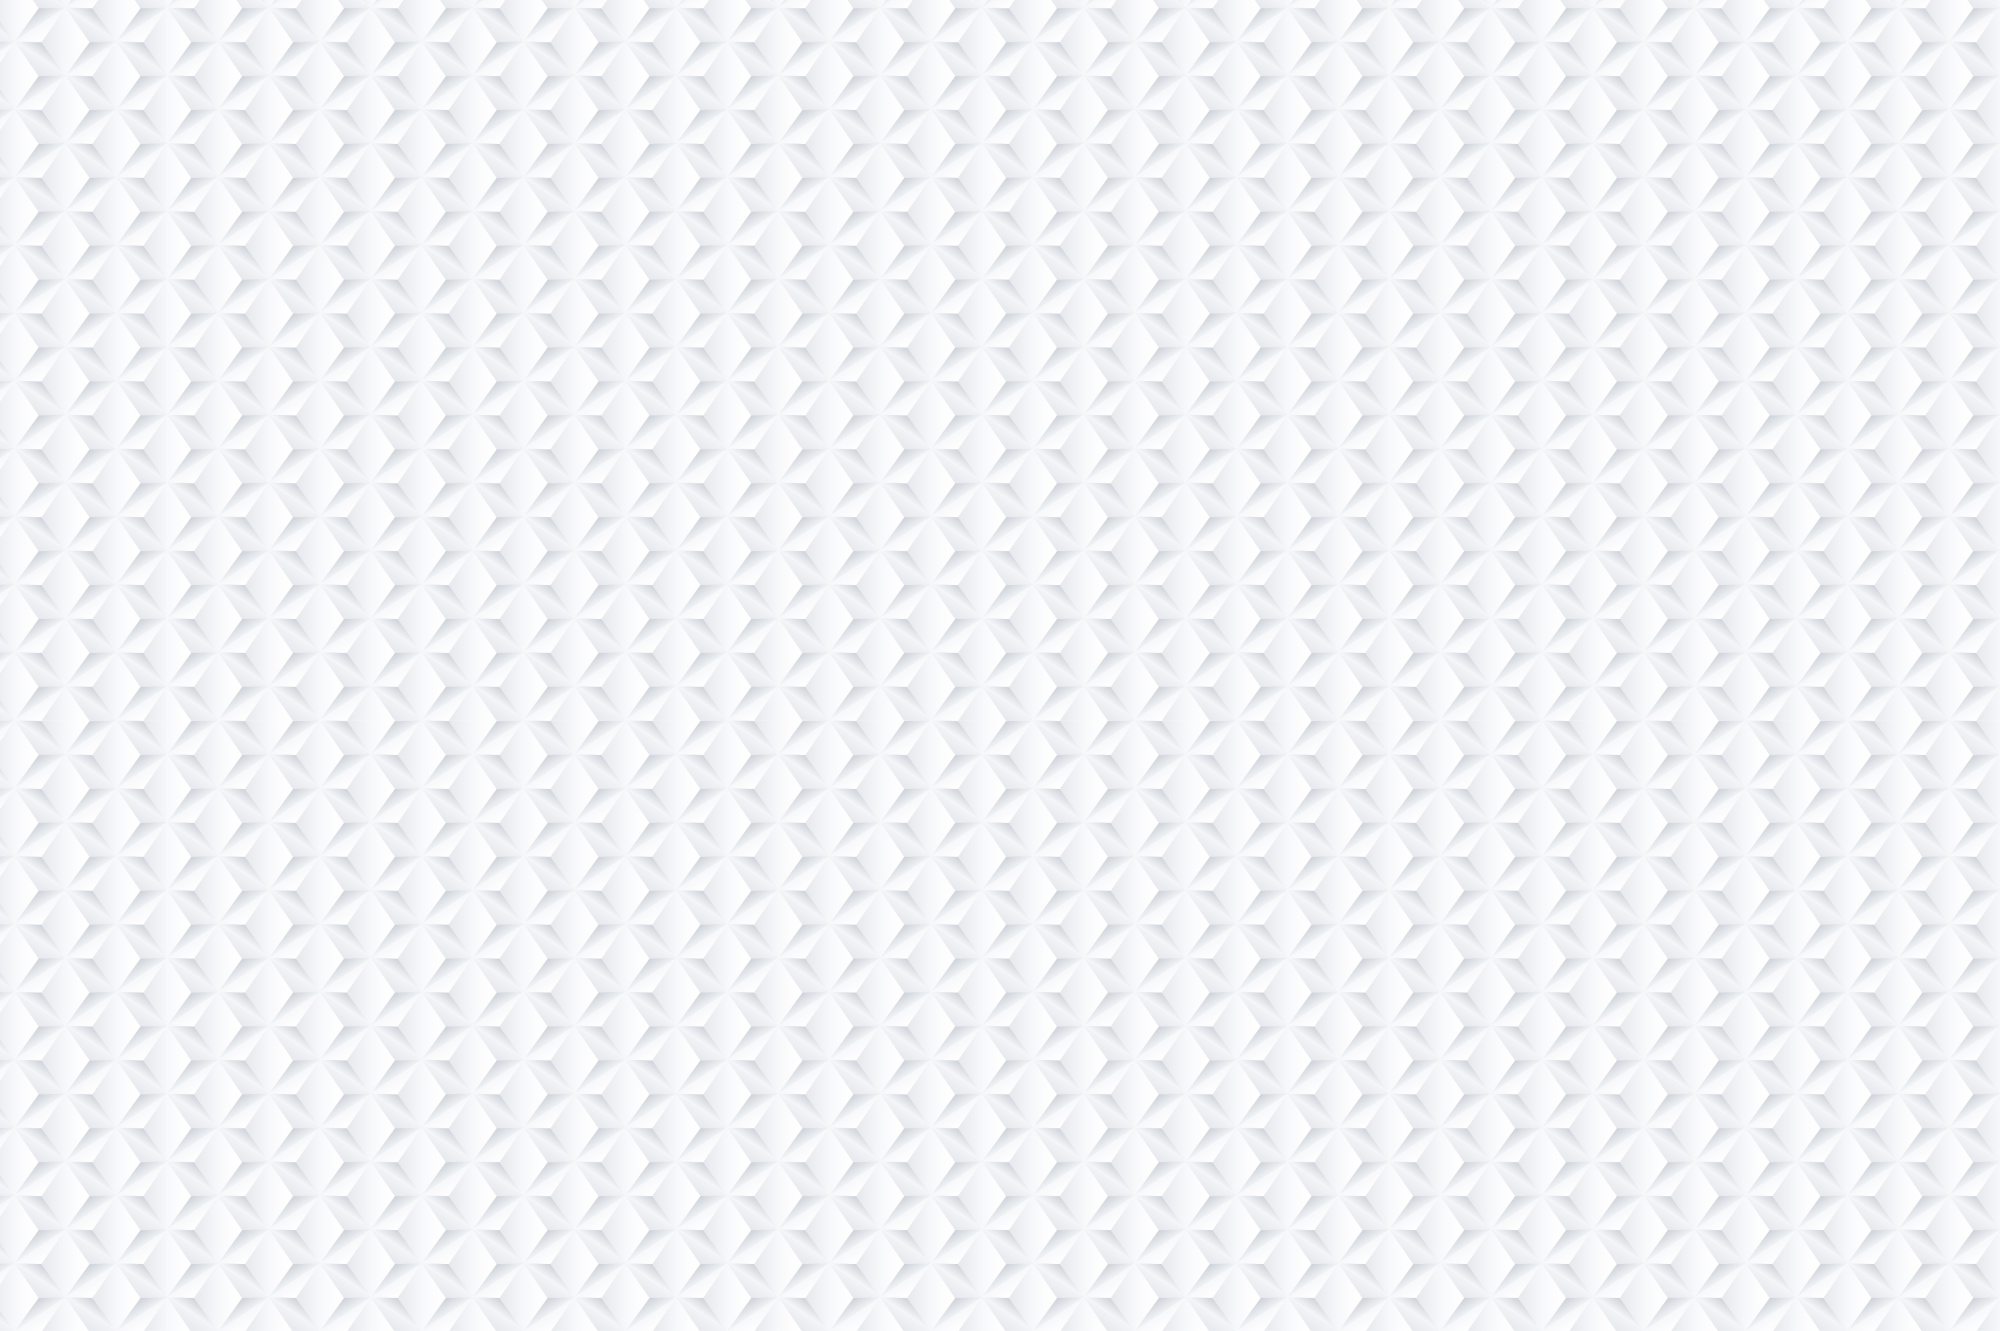 Seamless White 3d Textures. Swatches example image 9